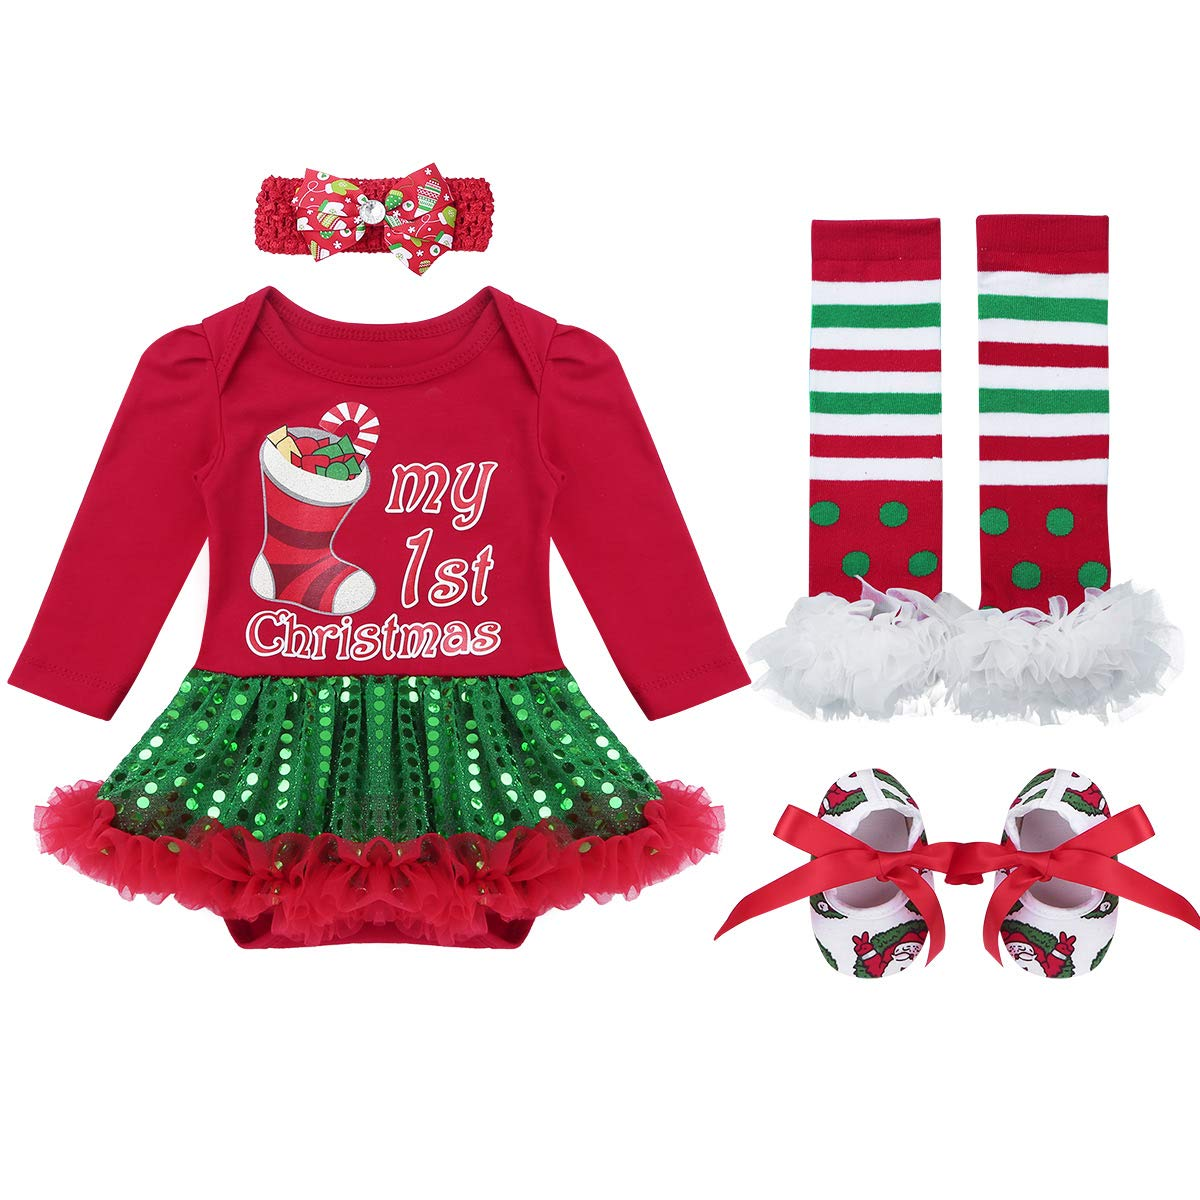 CHICTRY Newborn Baby Girls 1ST Christmas Outfits Tutu Romper Dress with Headband Leg Warmer Shoes Set